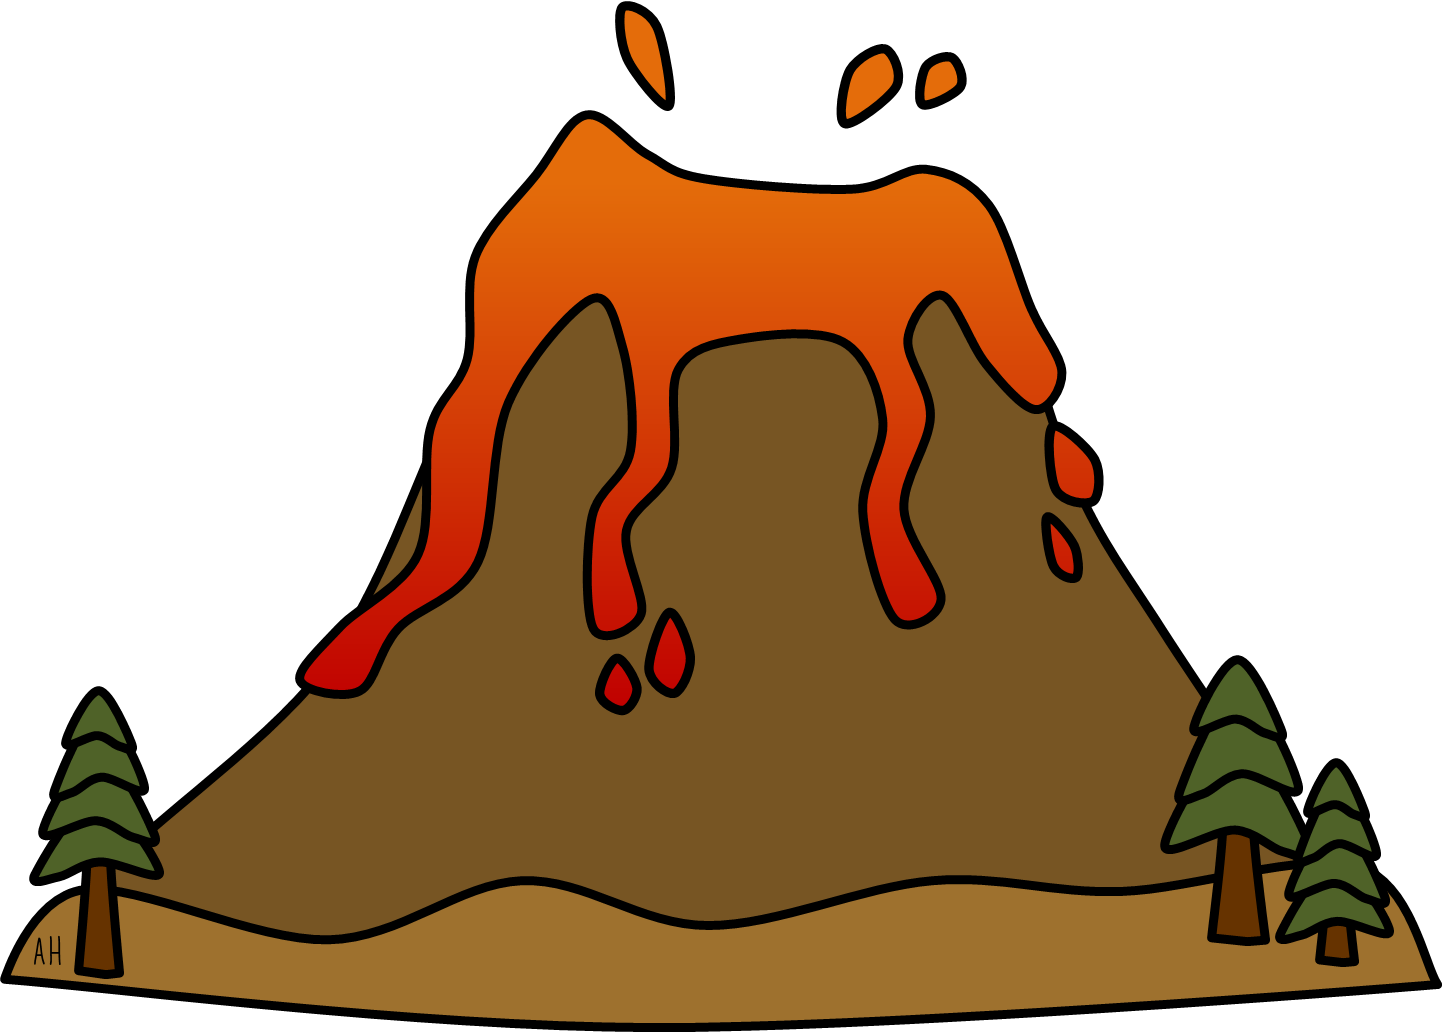 image royalty free Volcano clipart.